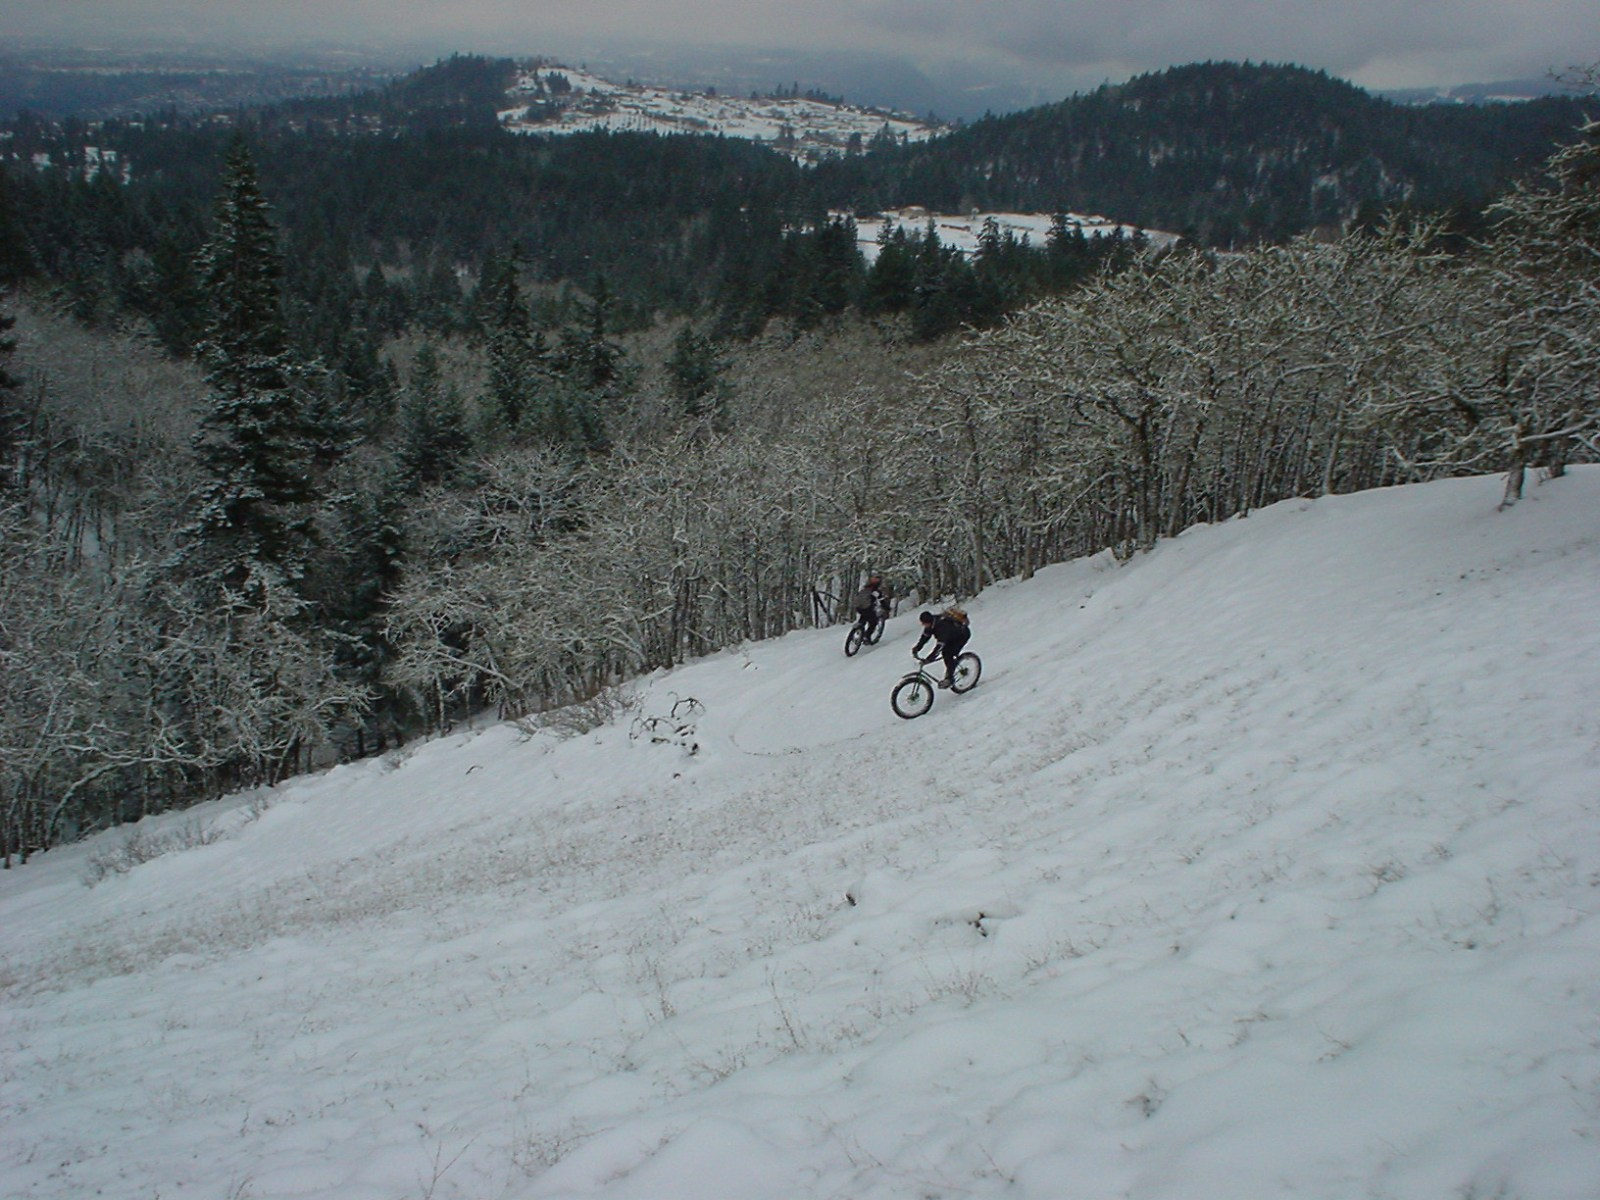 Daily fatbike pic thread-jerry_brant4resize.jpg